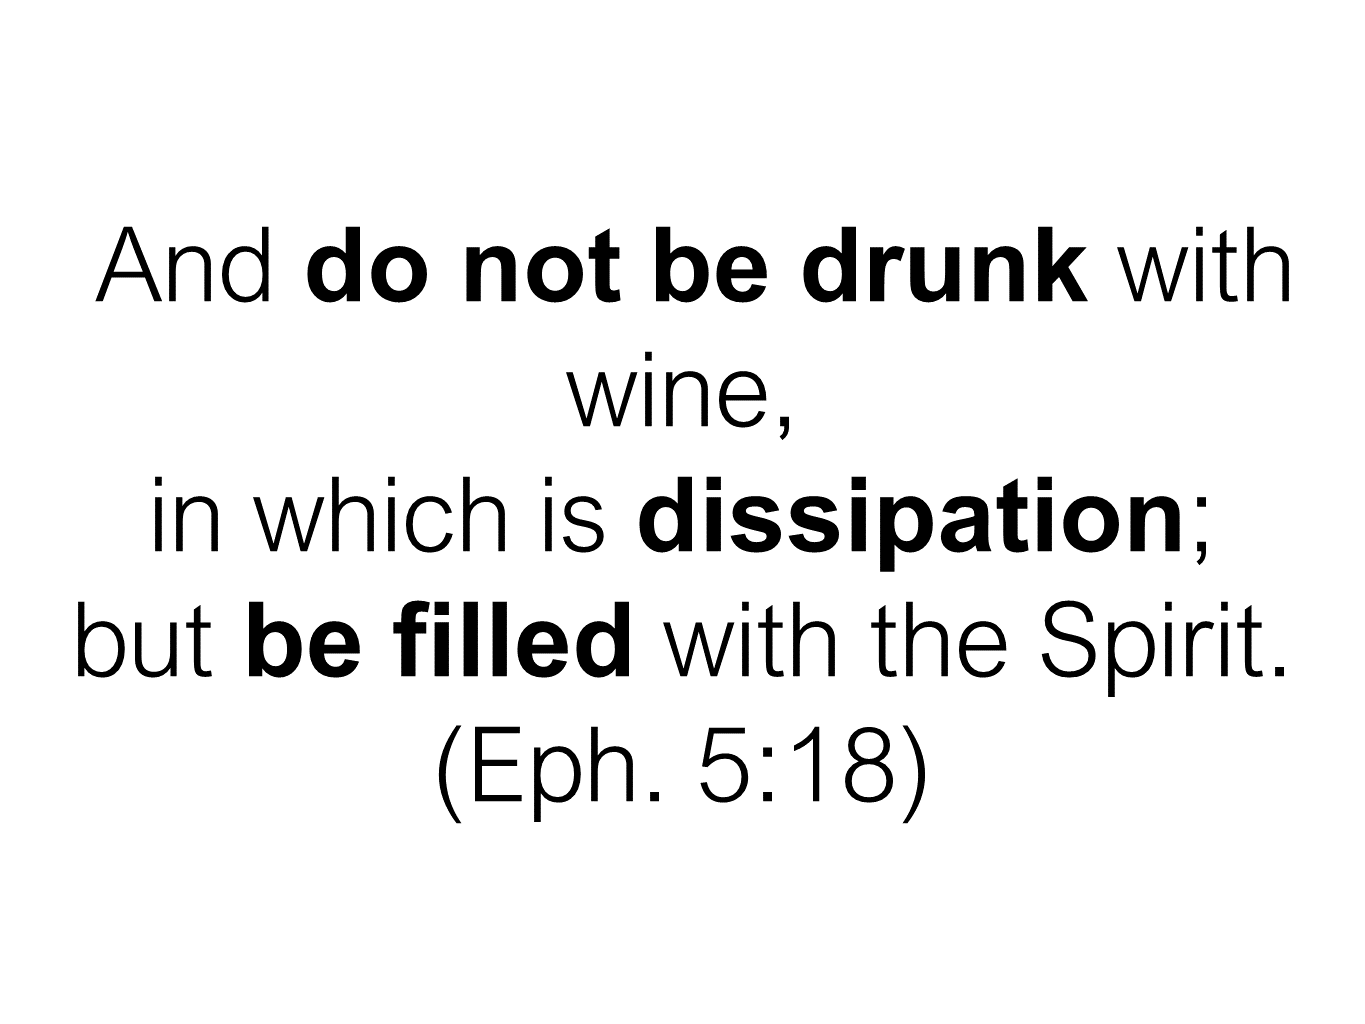 ESH-28 - Discipleship Lesson 4 - The Spirit Of God Teaching Them About The Source Of An Endl (13)